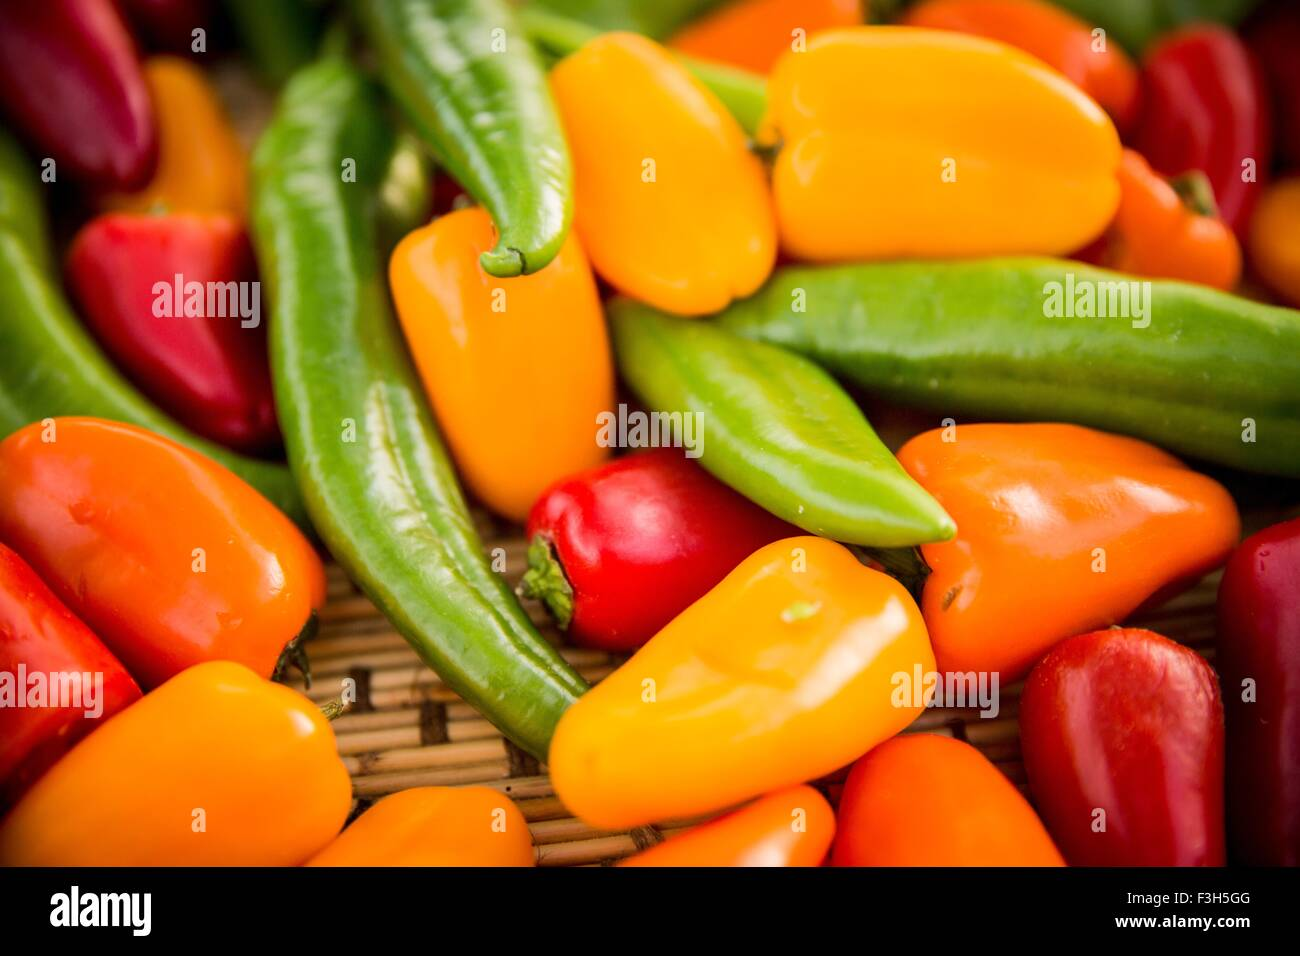 Selection of colourful peppers, full frame, close-up - Stock Image